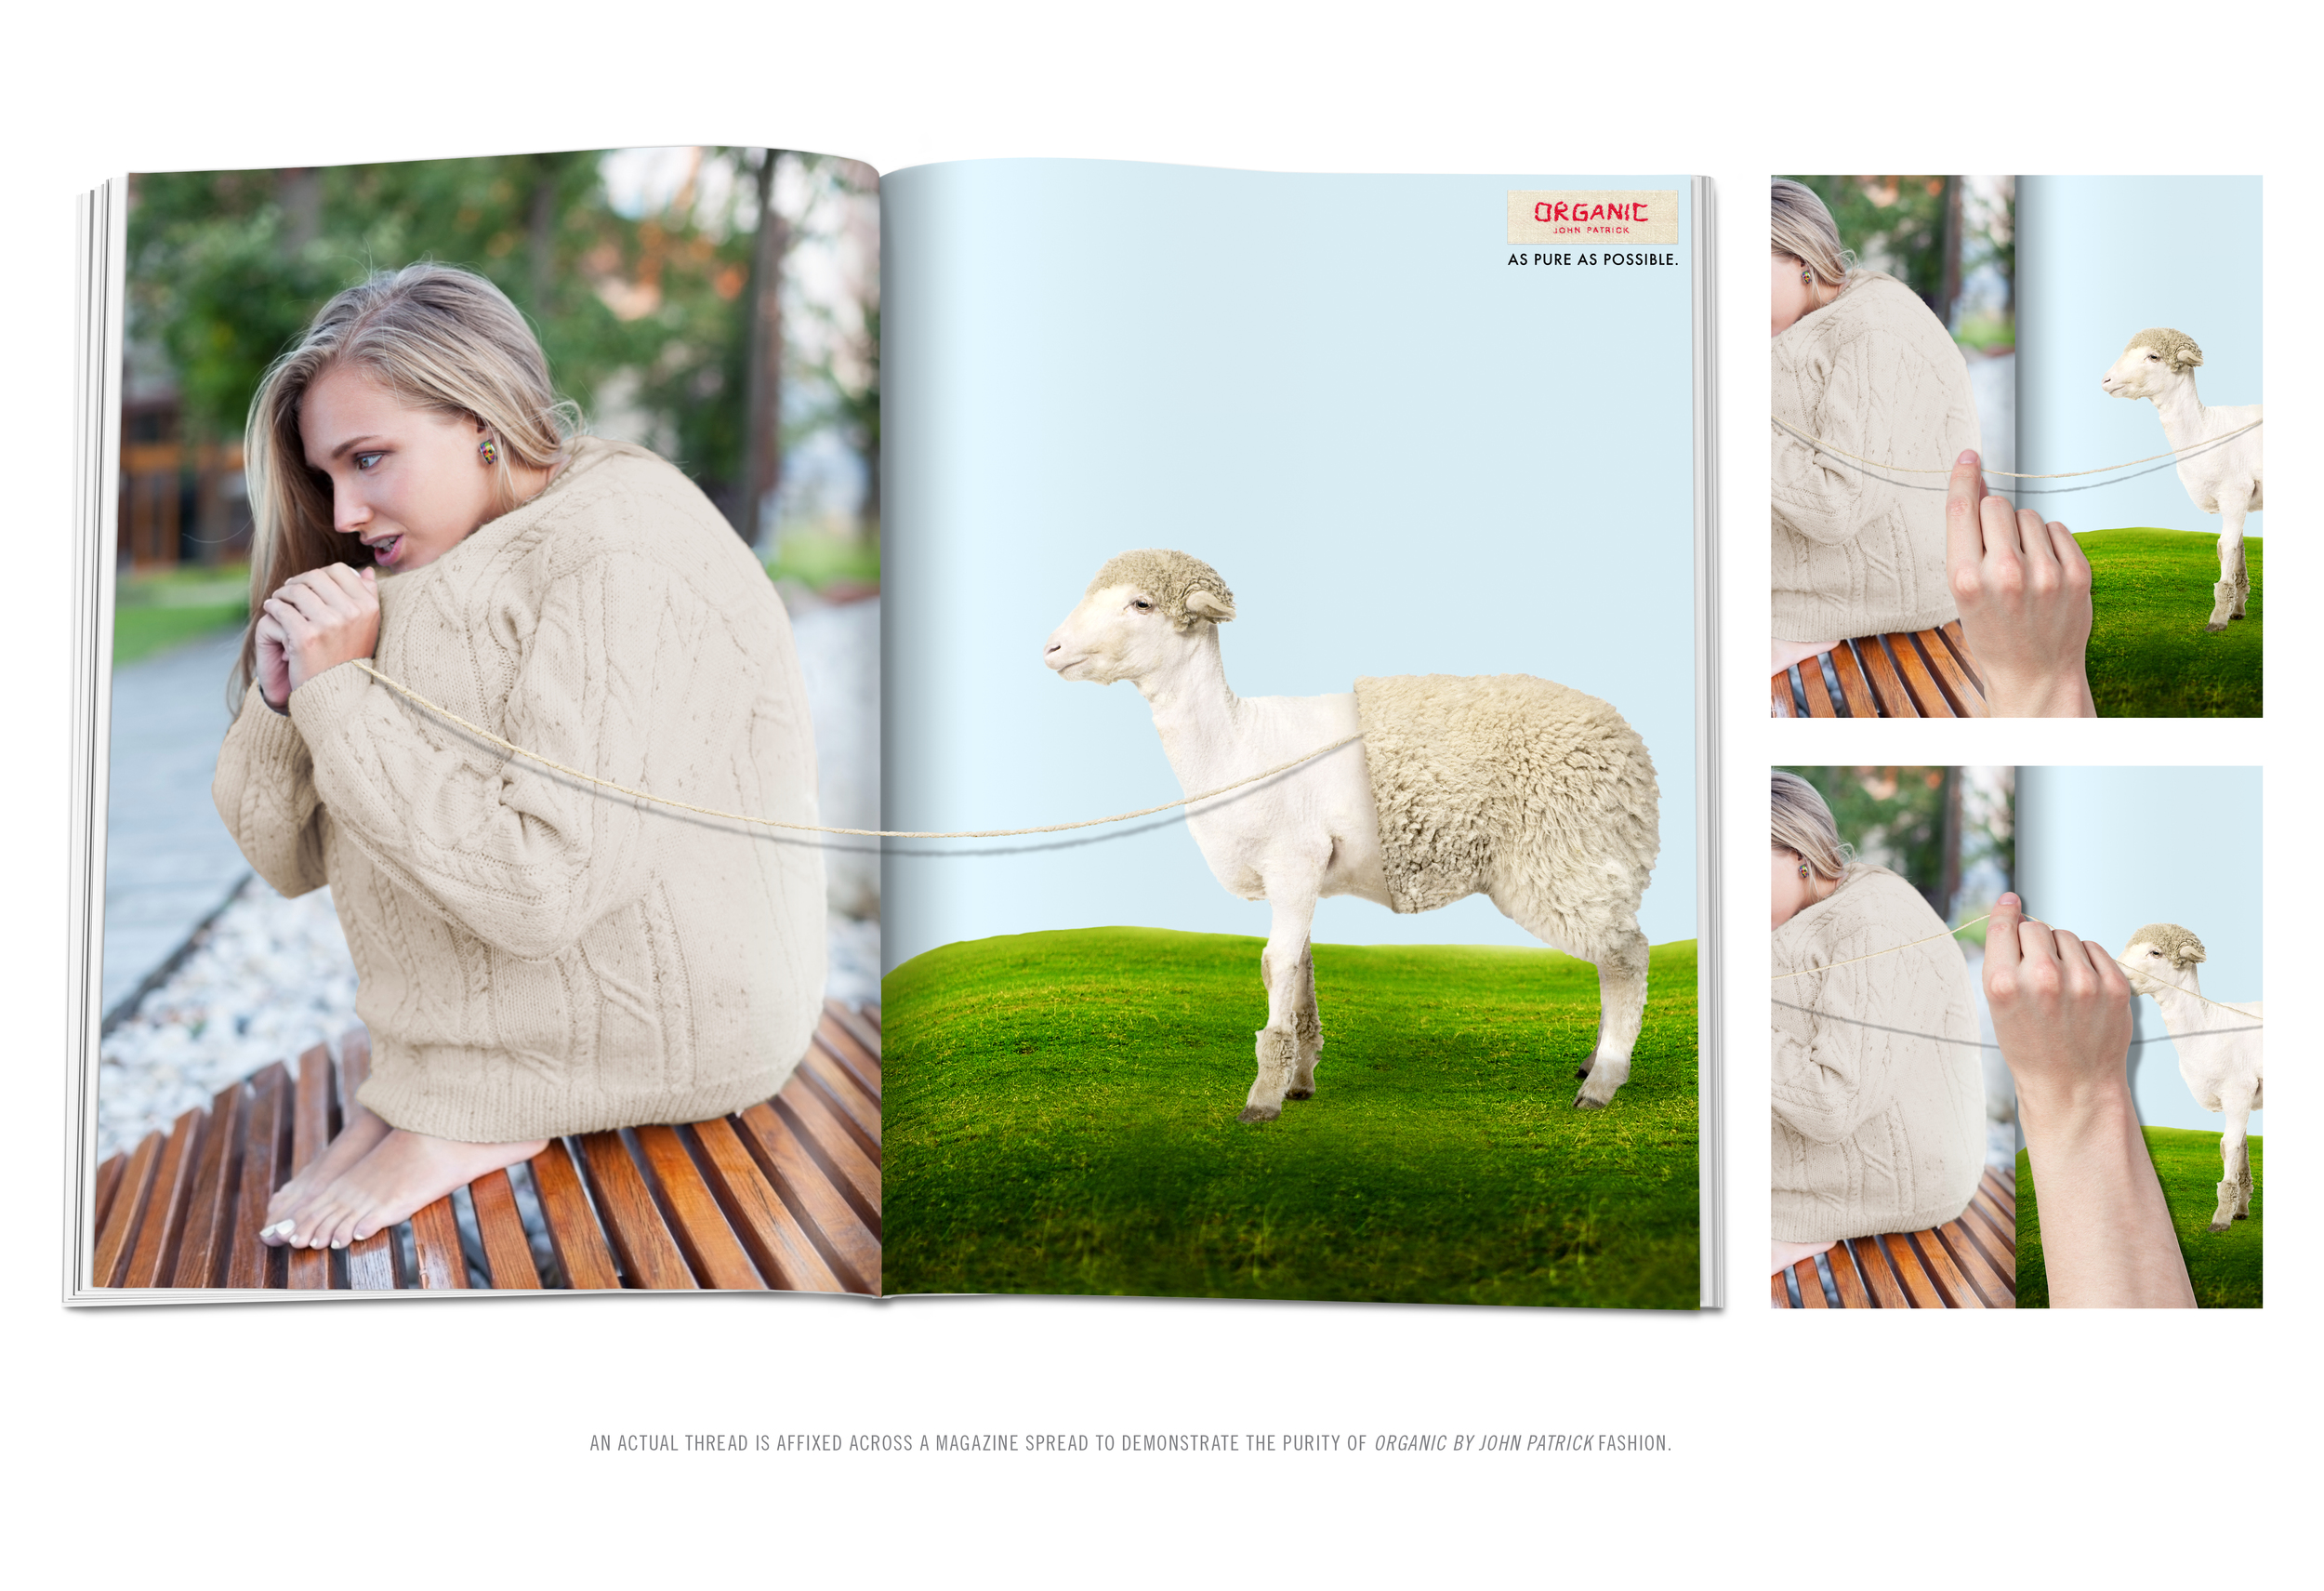 AN ACTUAL THREAD IS AFFIXED ACROSS A MAGAZINE SPREAD TO DEMONSTRATE THE PURITY OF  ORGANIC BY JOHN PATRICK  FASHION.